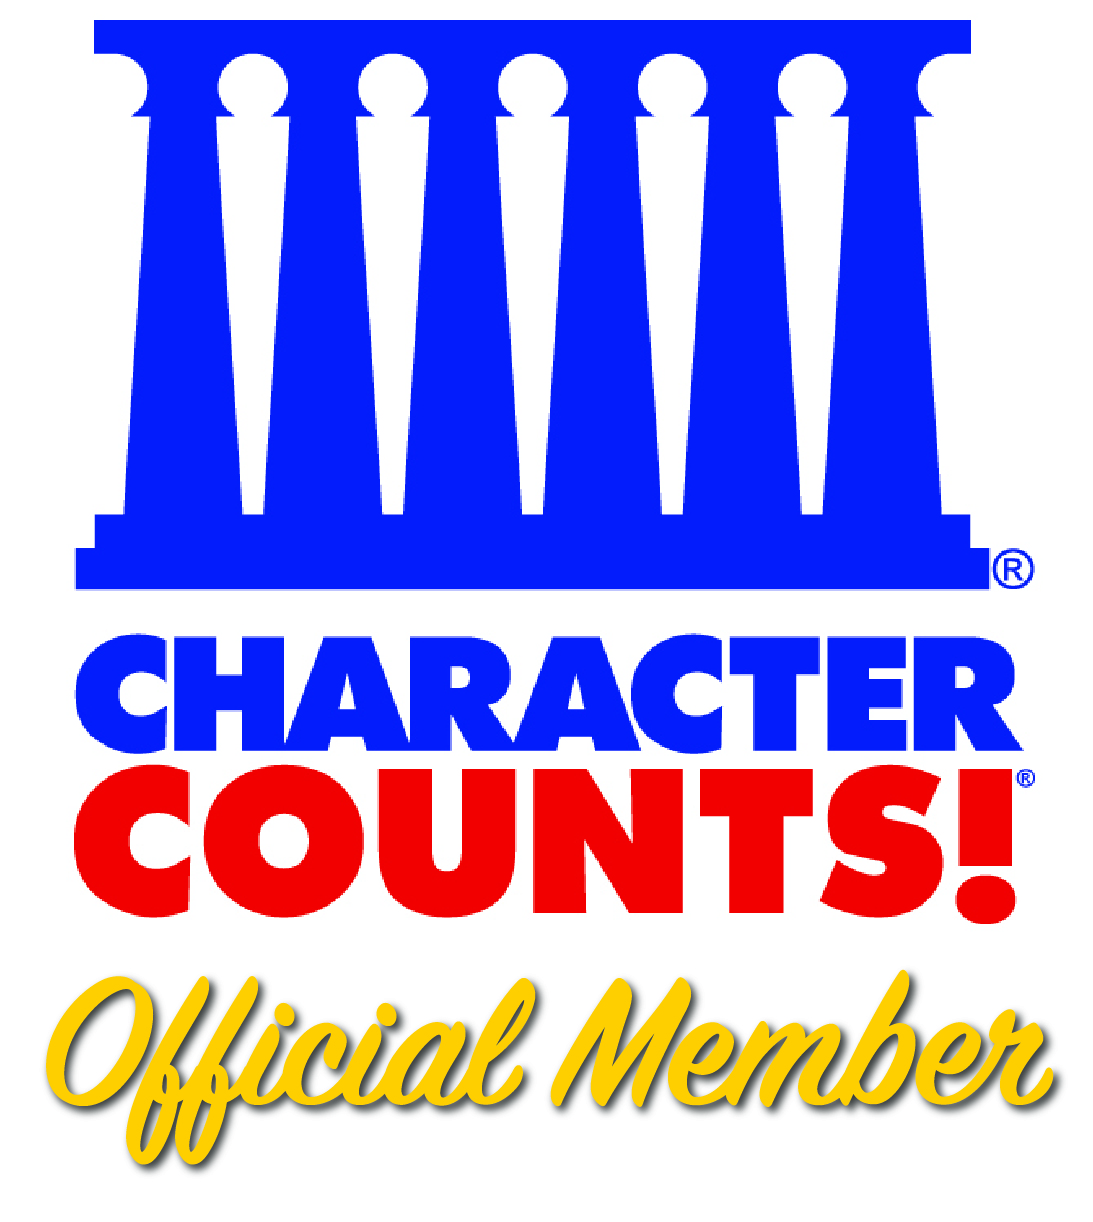 Faith Family Academy is an official member of CHARACTERCOUNTS